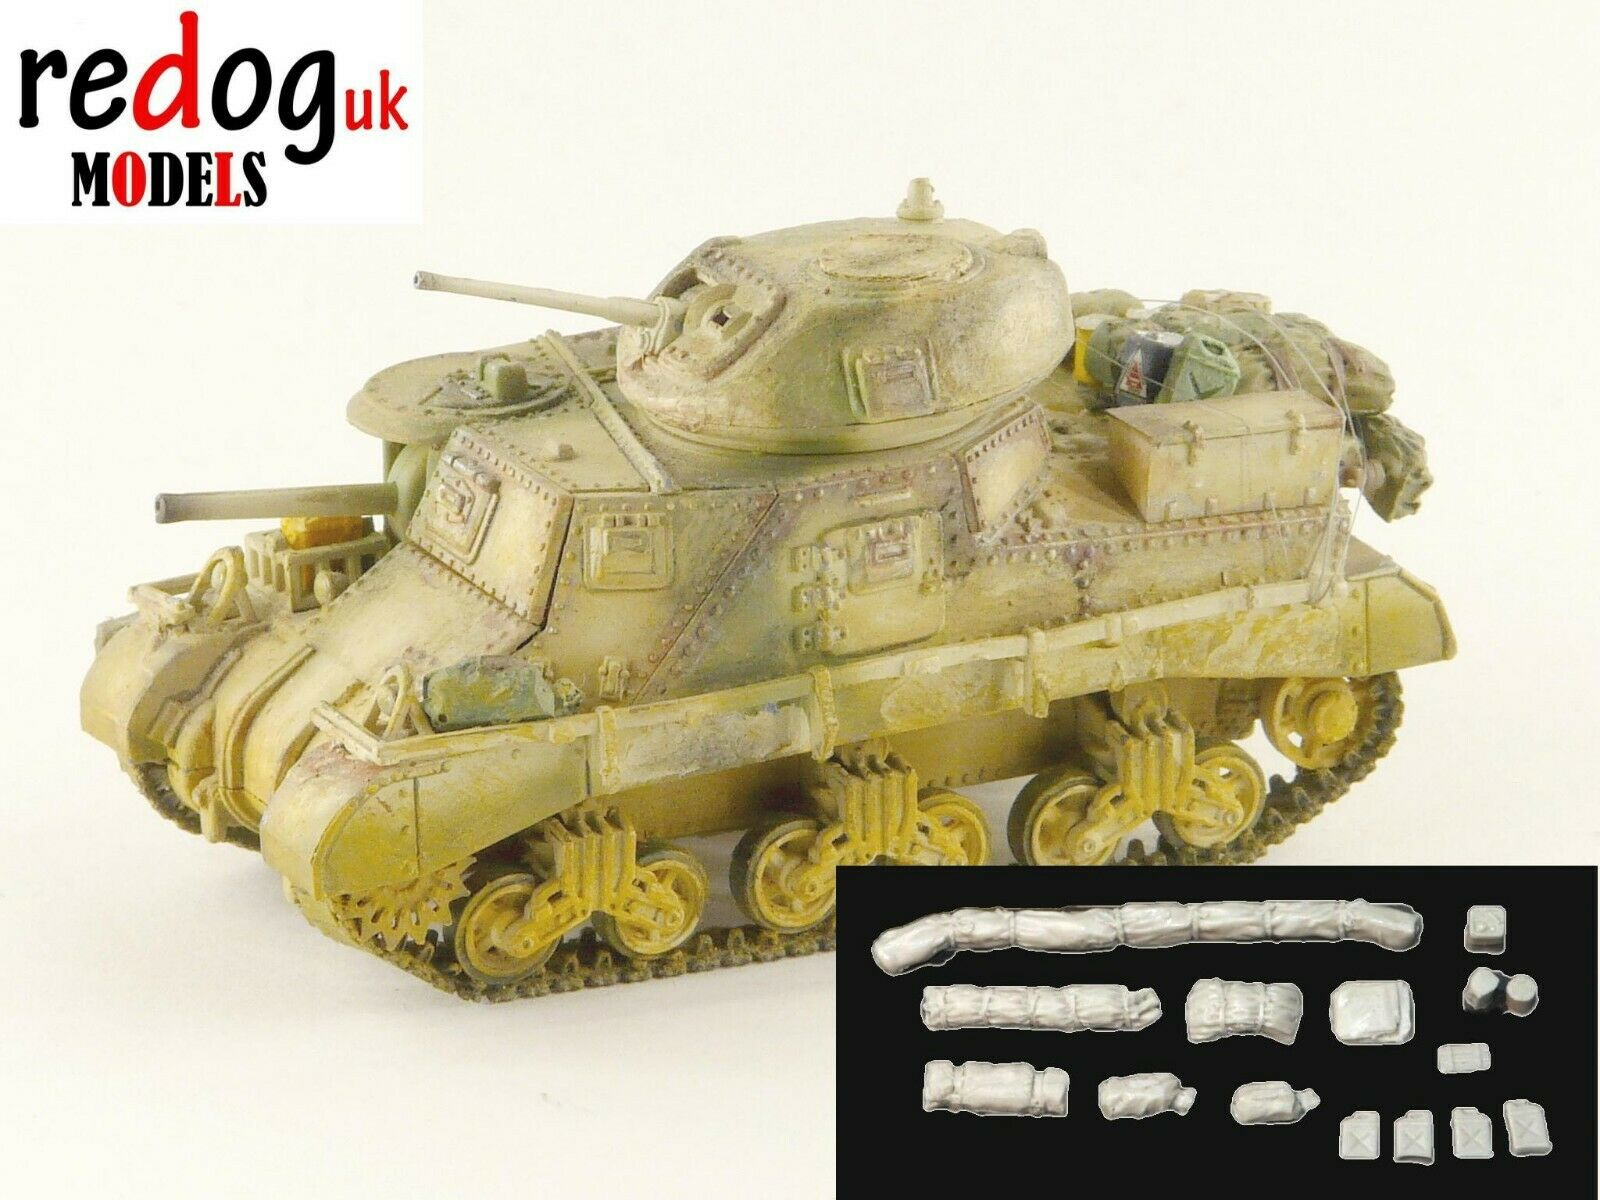 1:72 M3 Lee Tank Military Scale Model Stowage Kit Accessories - redoguk